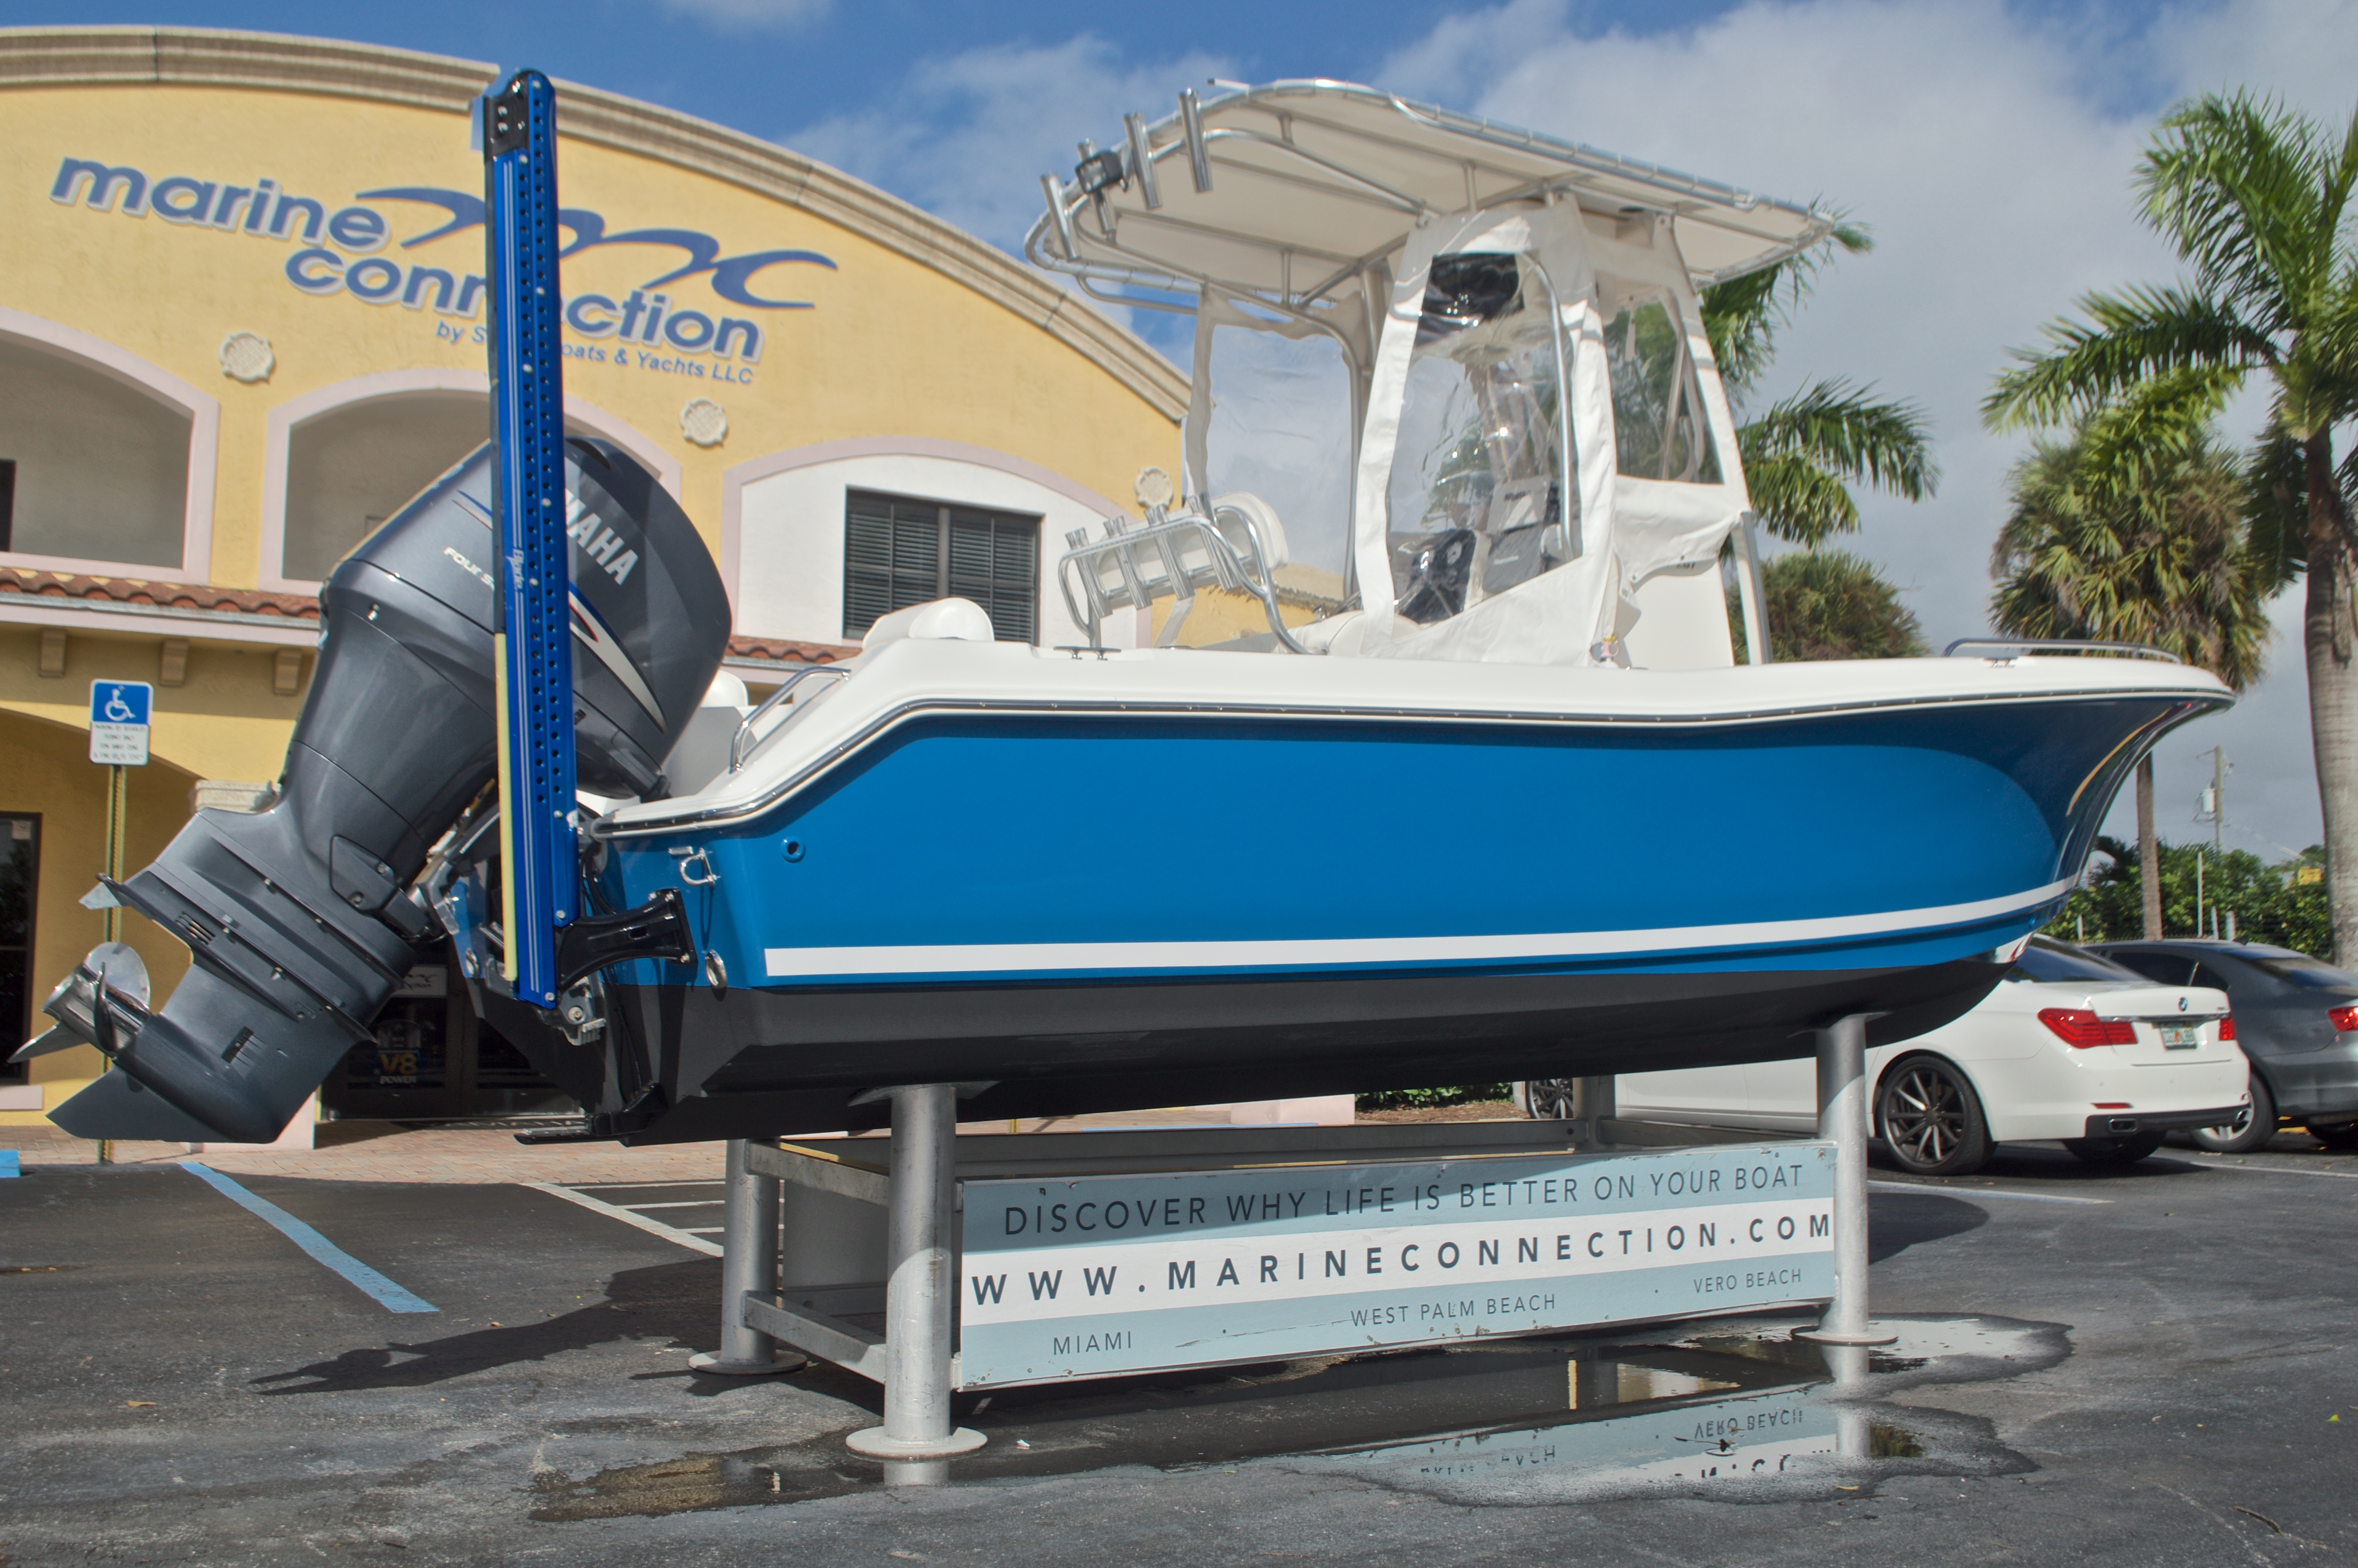 Thumbnail 10 for Used 2009 Sea Hunt 207 Triton boat for sale in West Palm Beach, FL